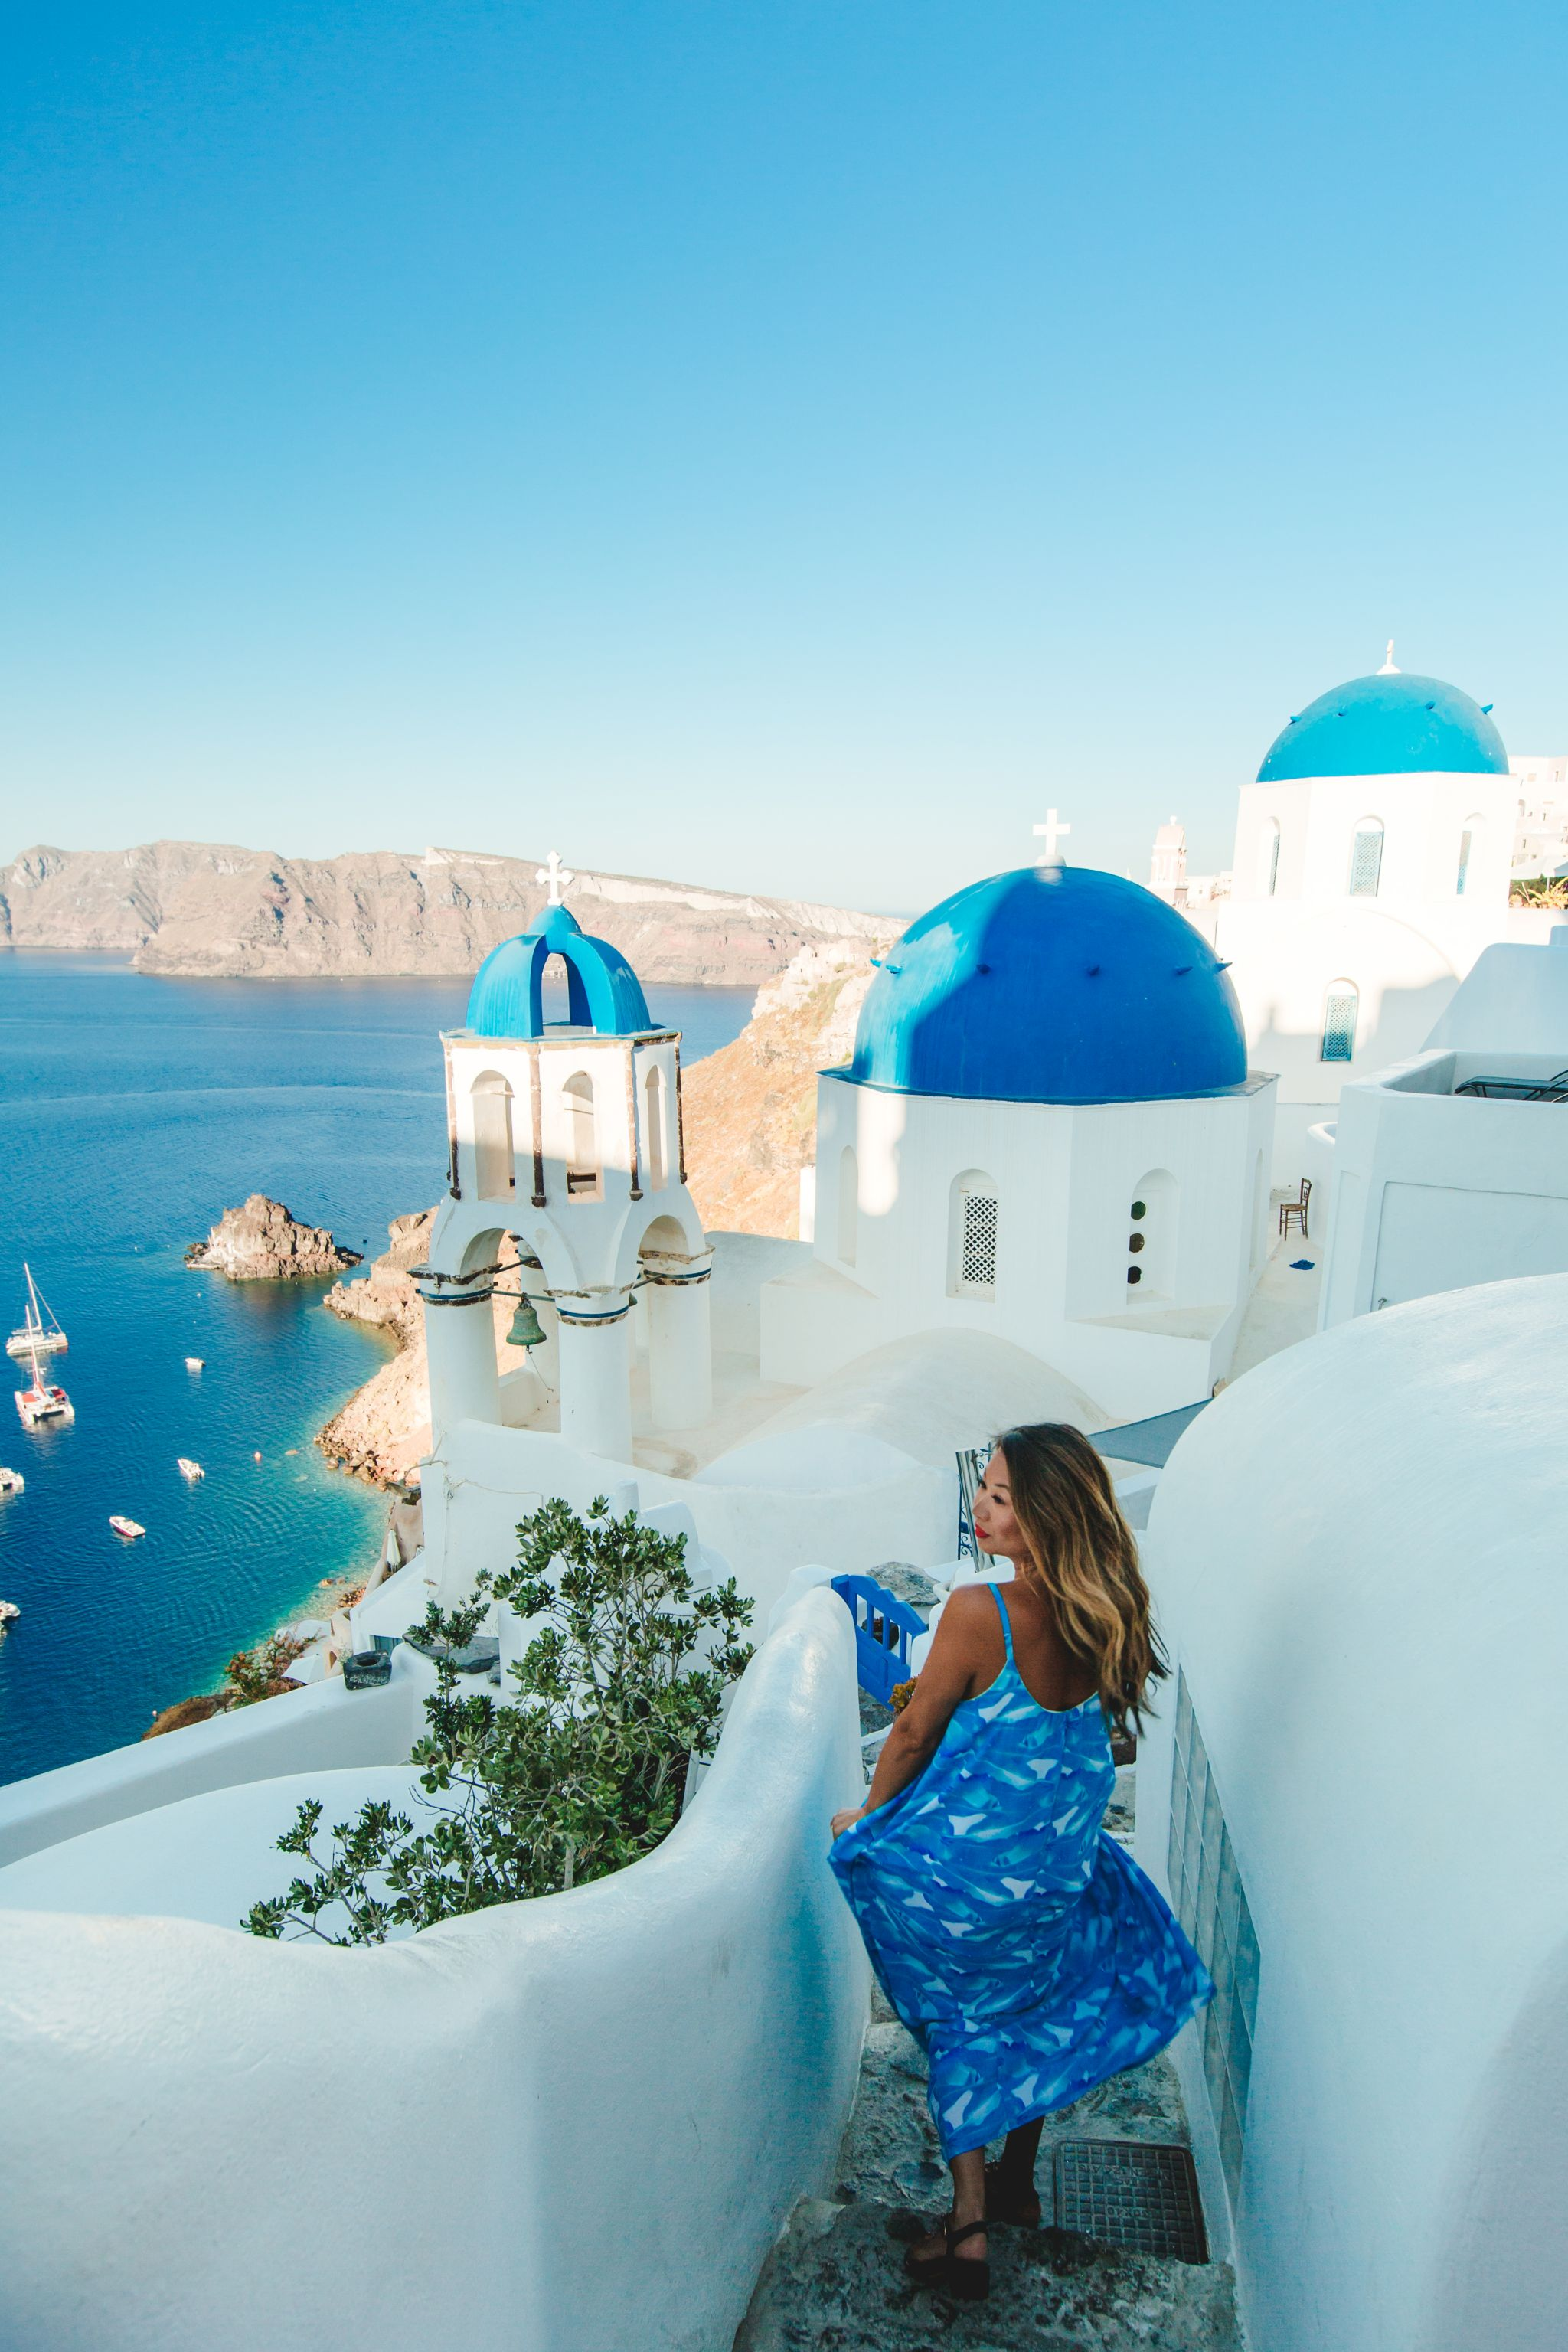 Blue domes santorini, Best places to take photos in Santorini, Best Santorini Photographer, Red Dress Greece Photos, Jennifer Worman, Epic Greece Photos, Where to go in Santorini, Chicago Travel Blogger, Greece Travel, Red Dress Boutique Blue Maxi Dress